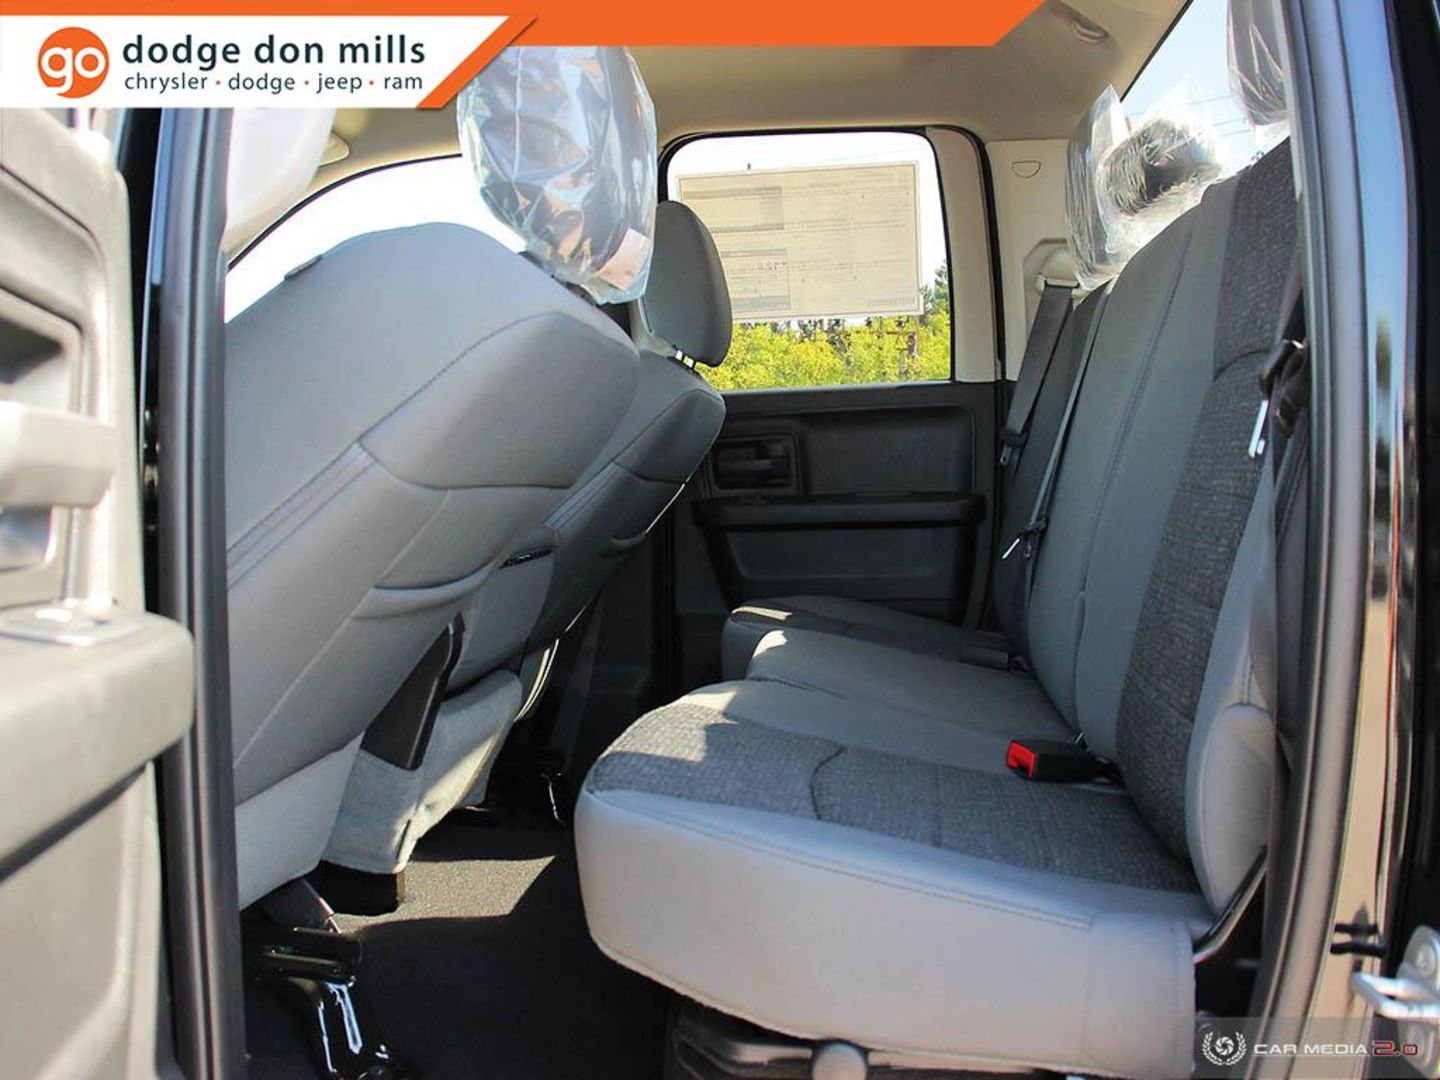 2019 Ram 1500 Classic Express for sale in Toronto, Ontario